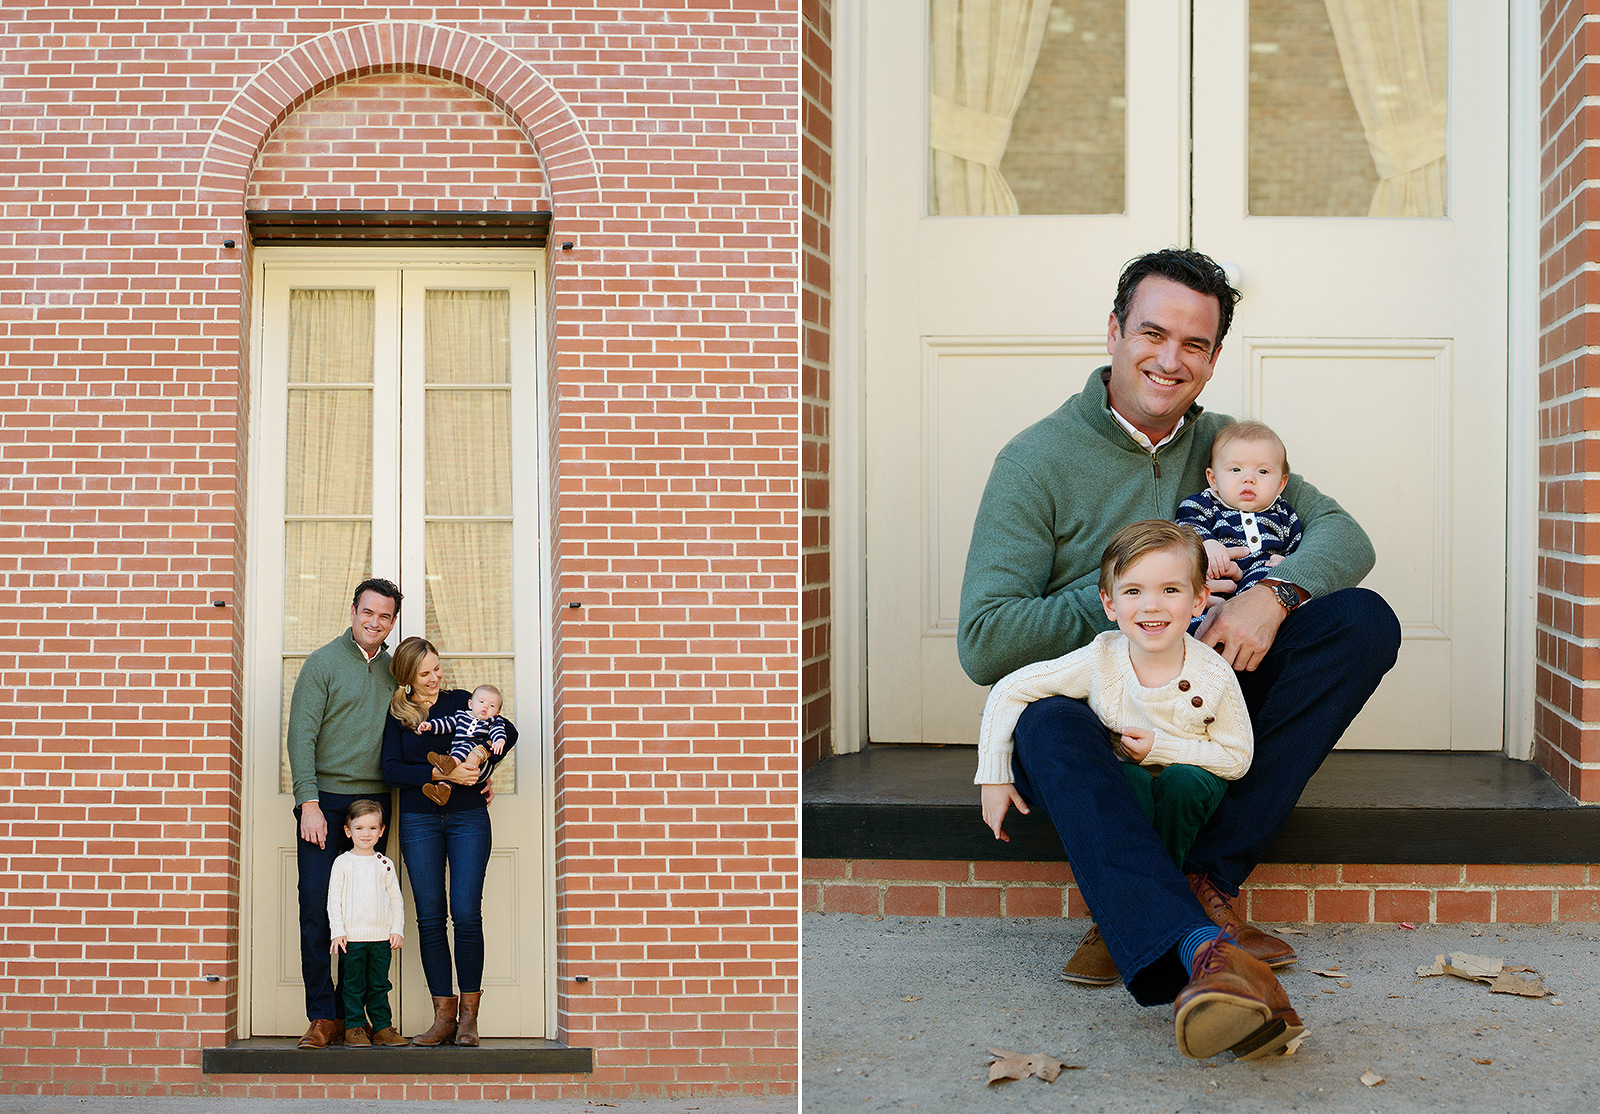 Father and Sons Family Photo in Front of Old Brick Building